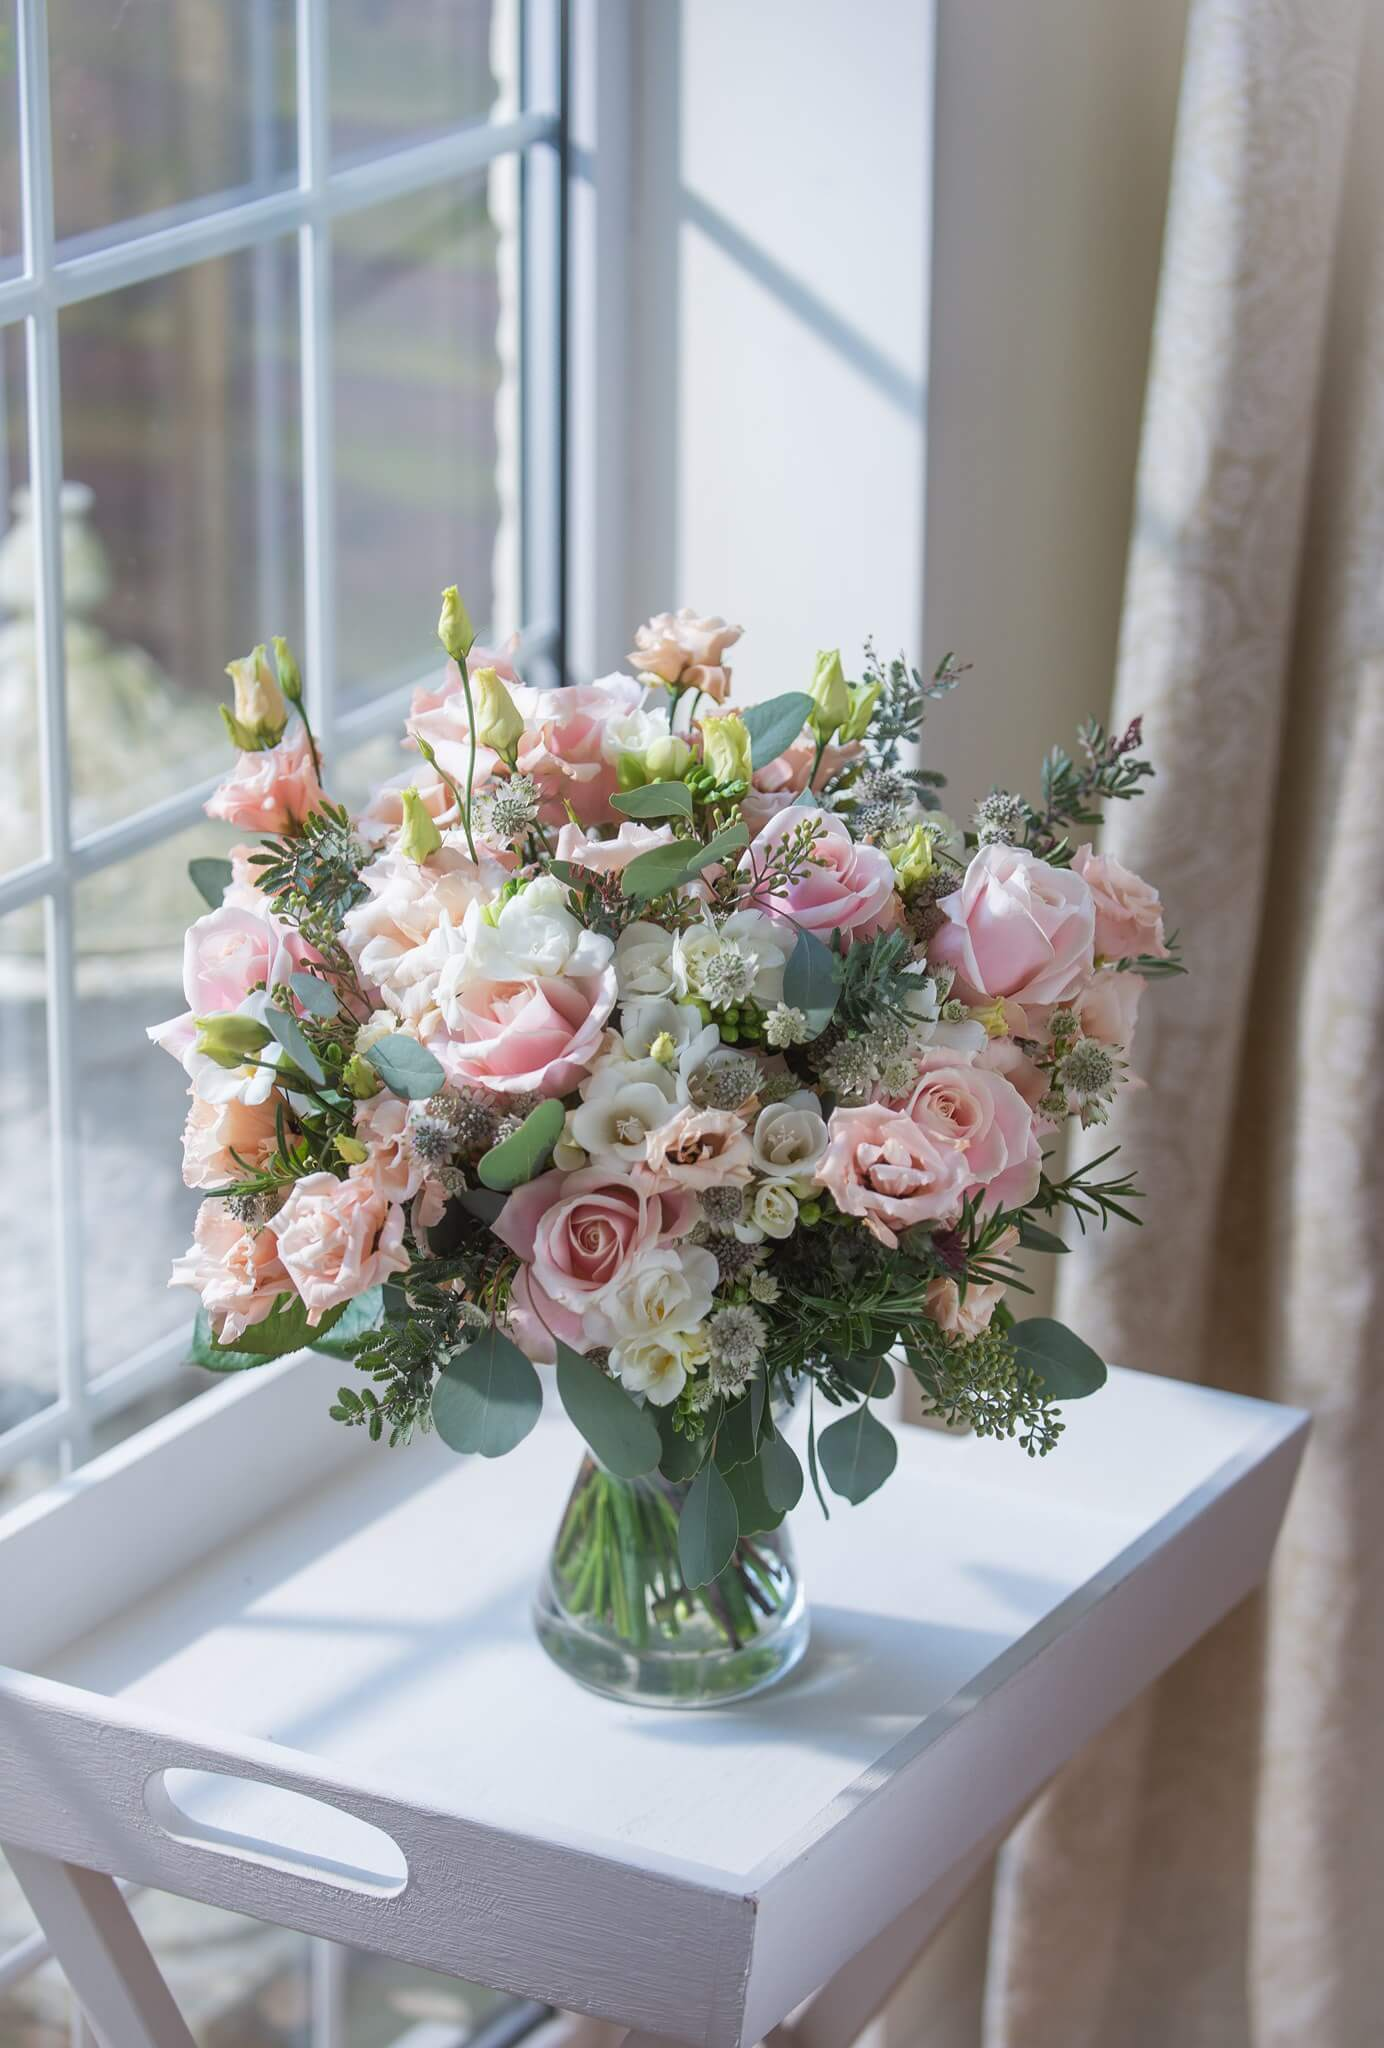 Bouquet of Flowers | The Mustcard